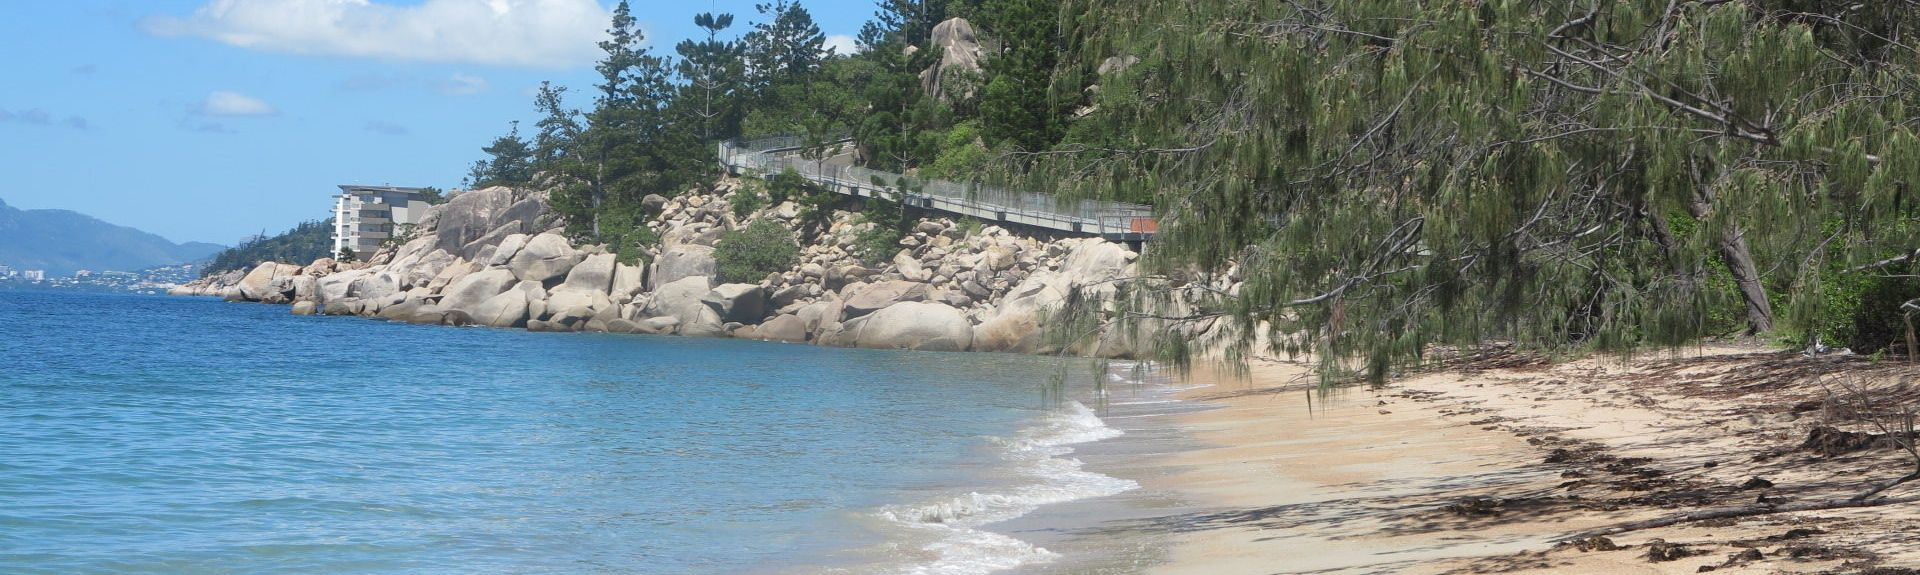 Horseshoe Bay QLD, Australia